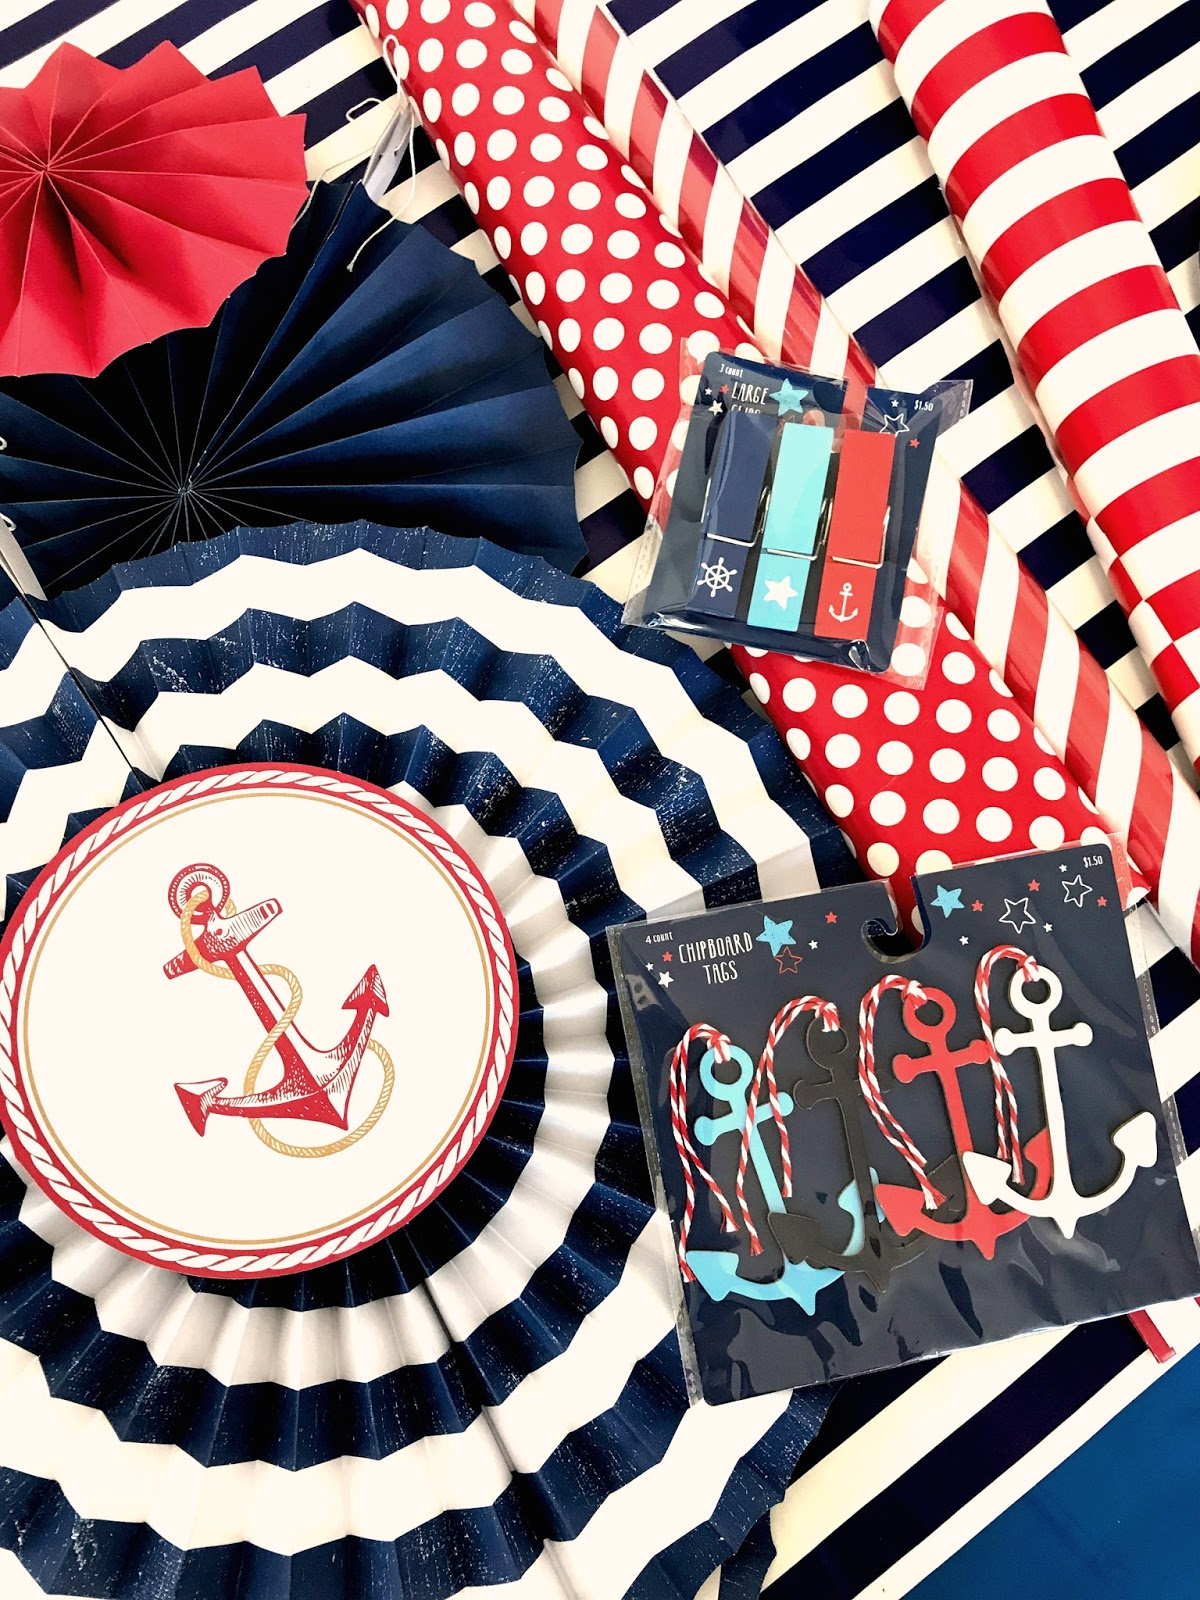 michelle paige blogs anchor themed birthday party Party Centerpieces nautical party supplies